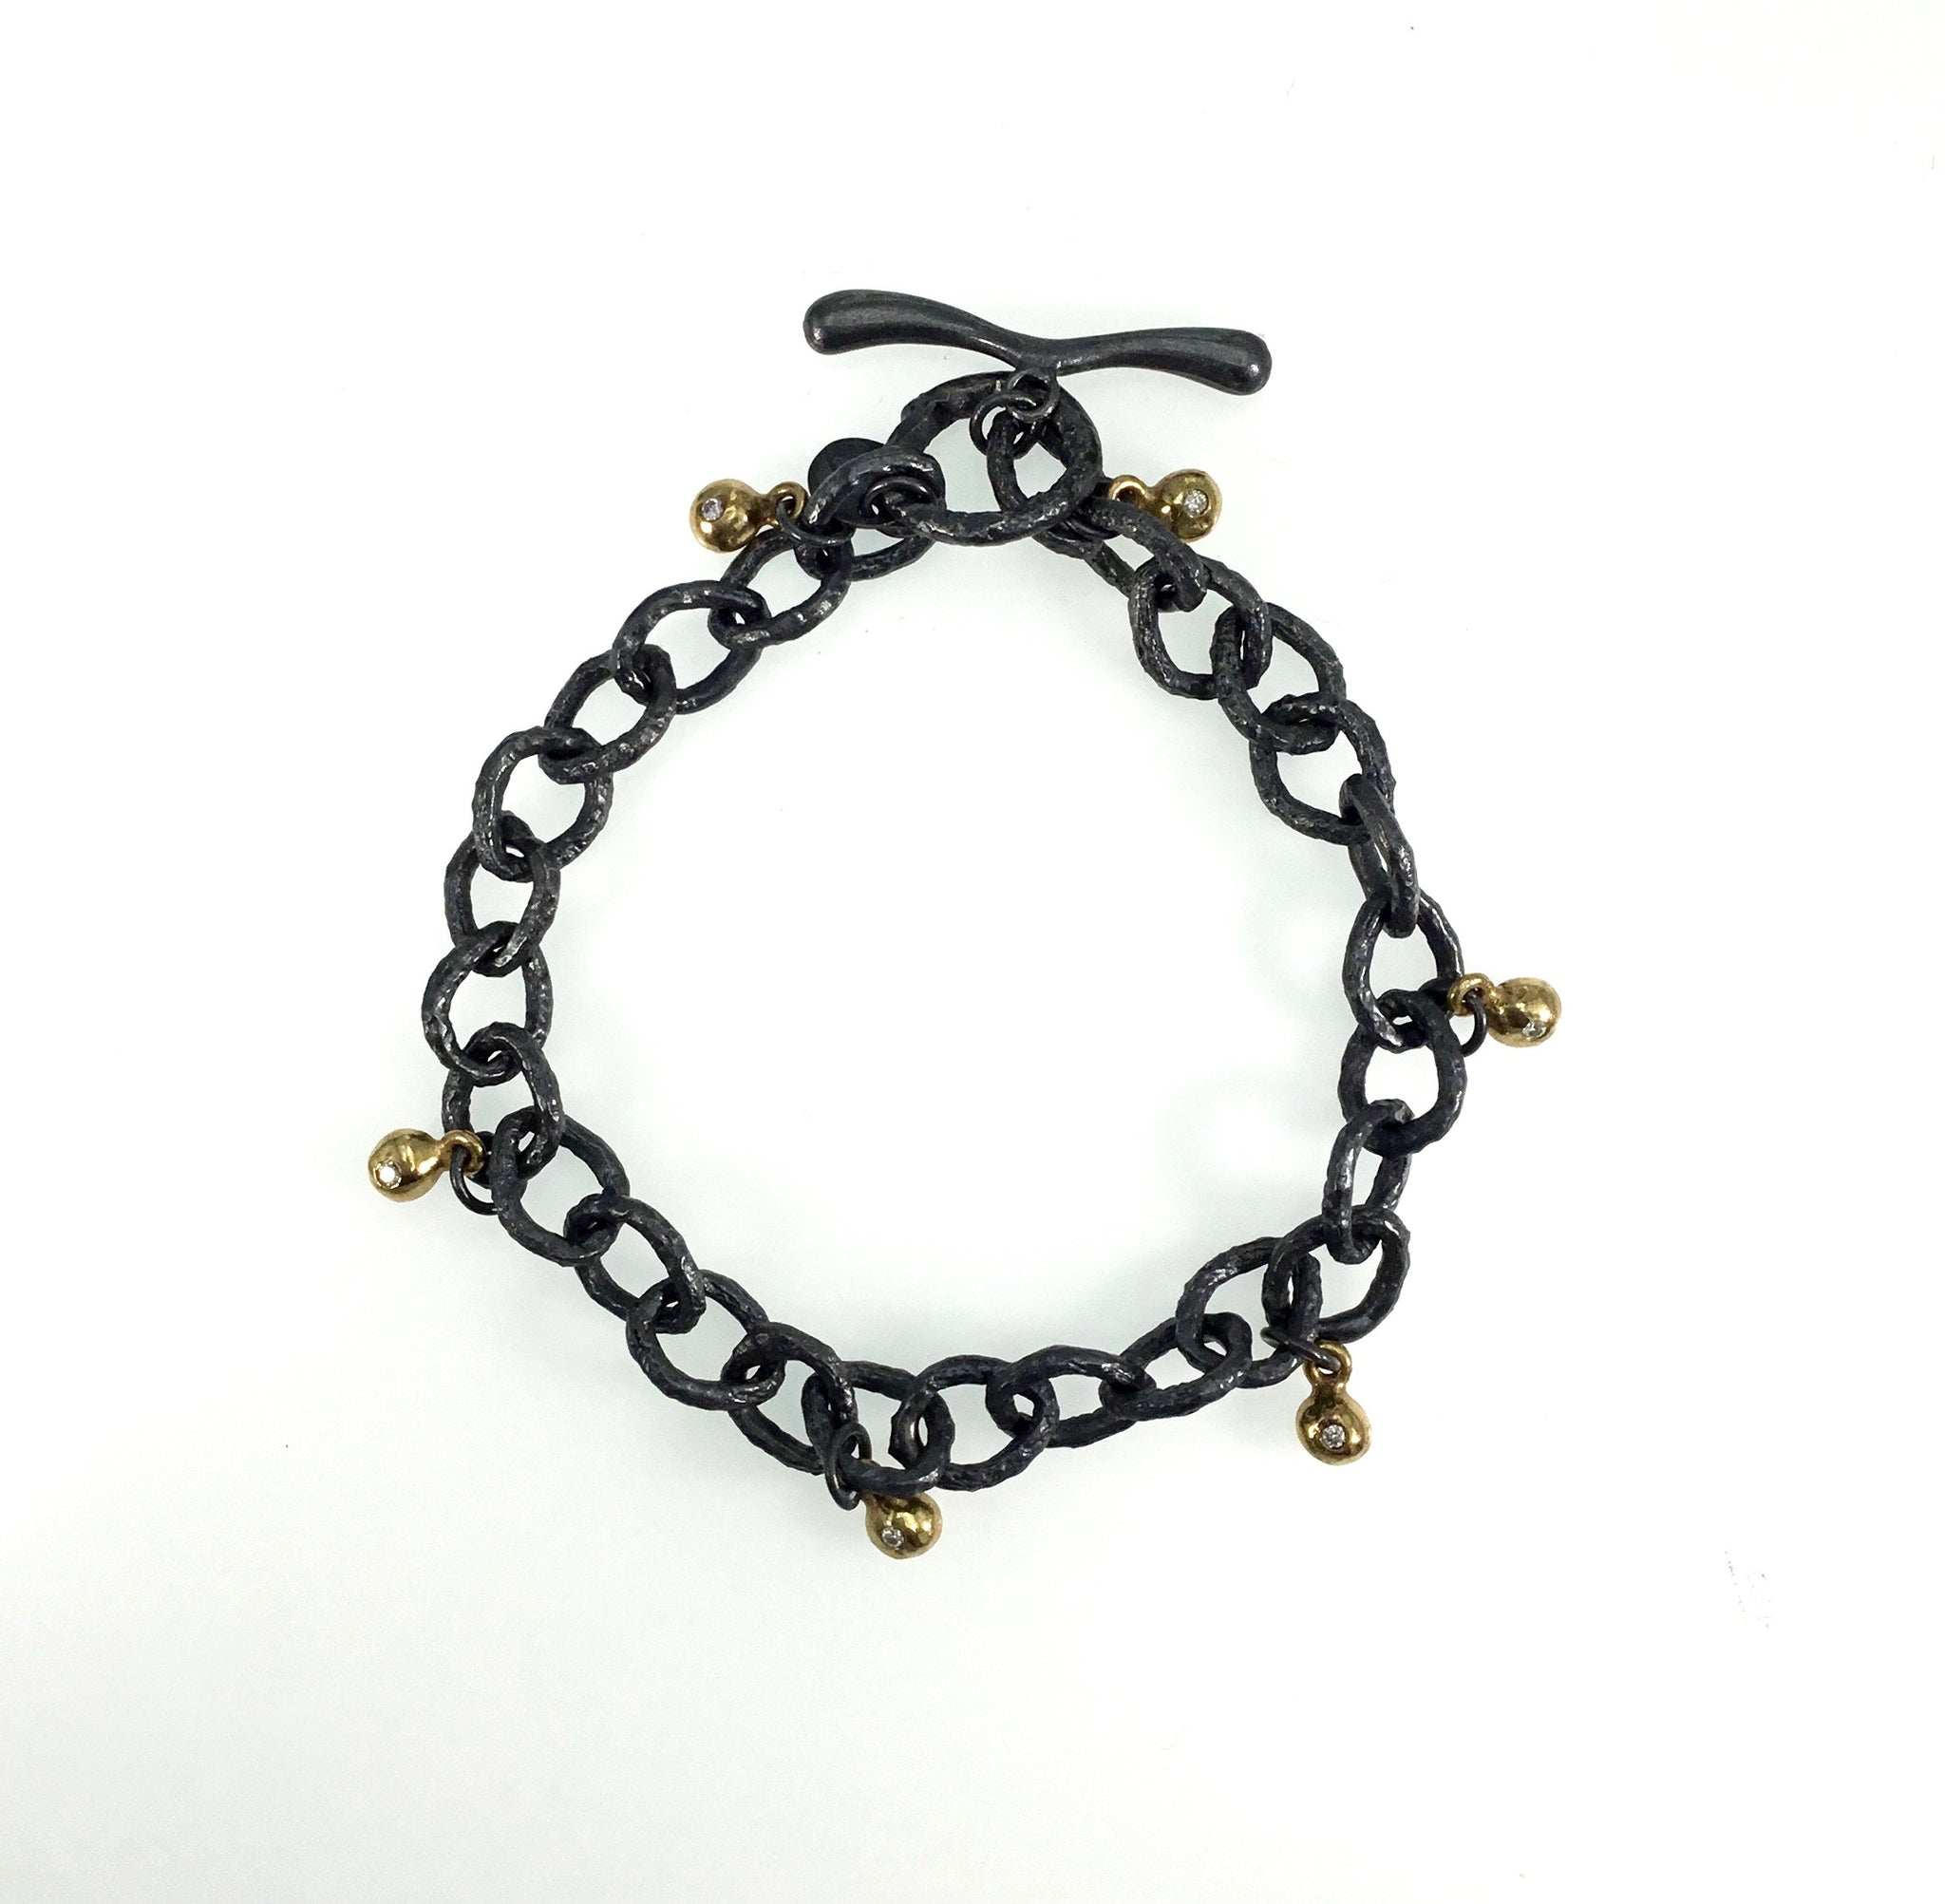 Emanuela Duca Inside out Bracelet